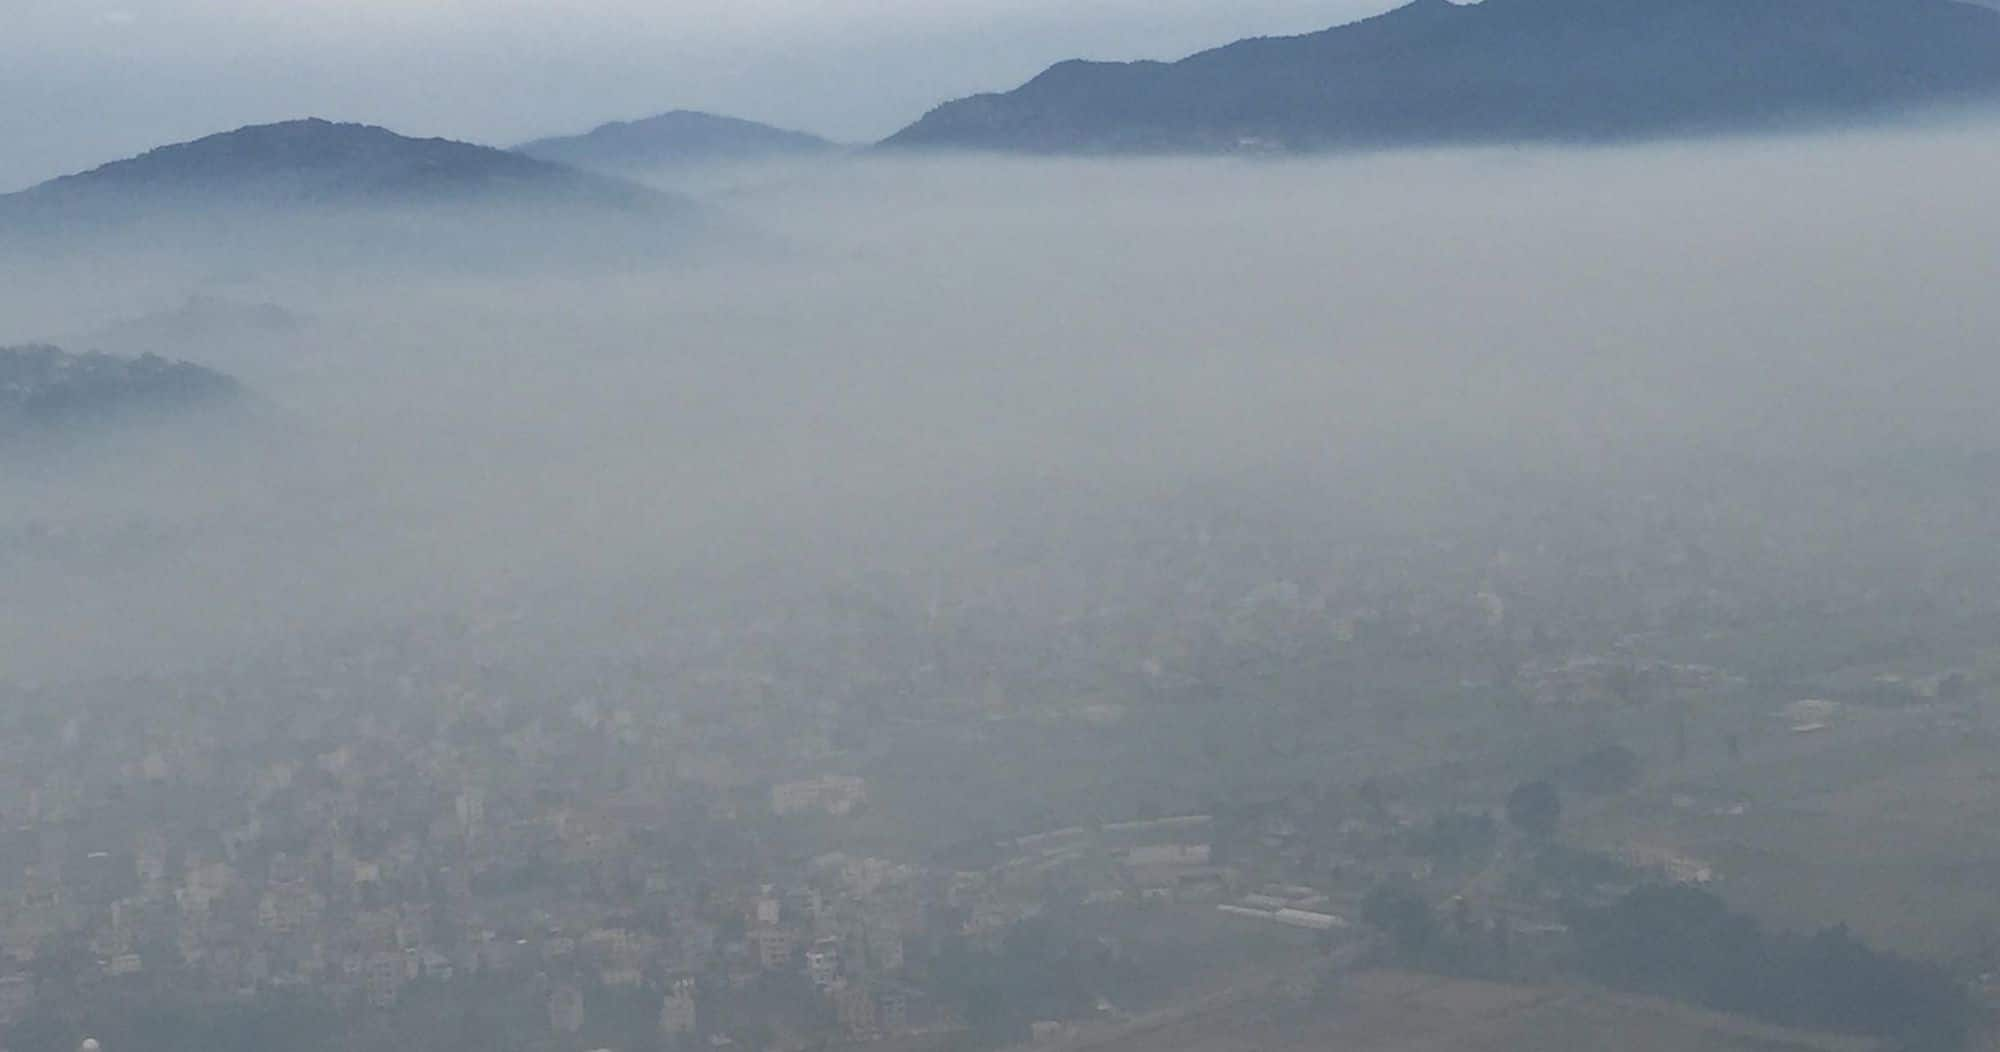 Nepal Shuts All Schools, Colleges For 4 Days As Air Pollution Worsens